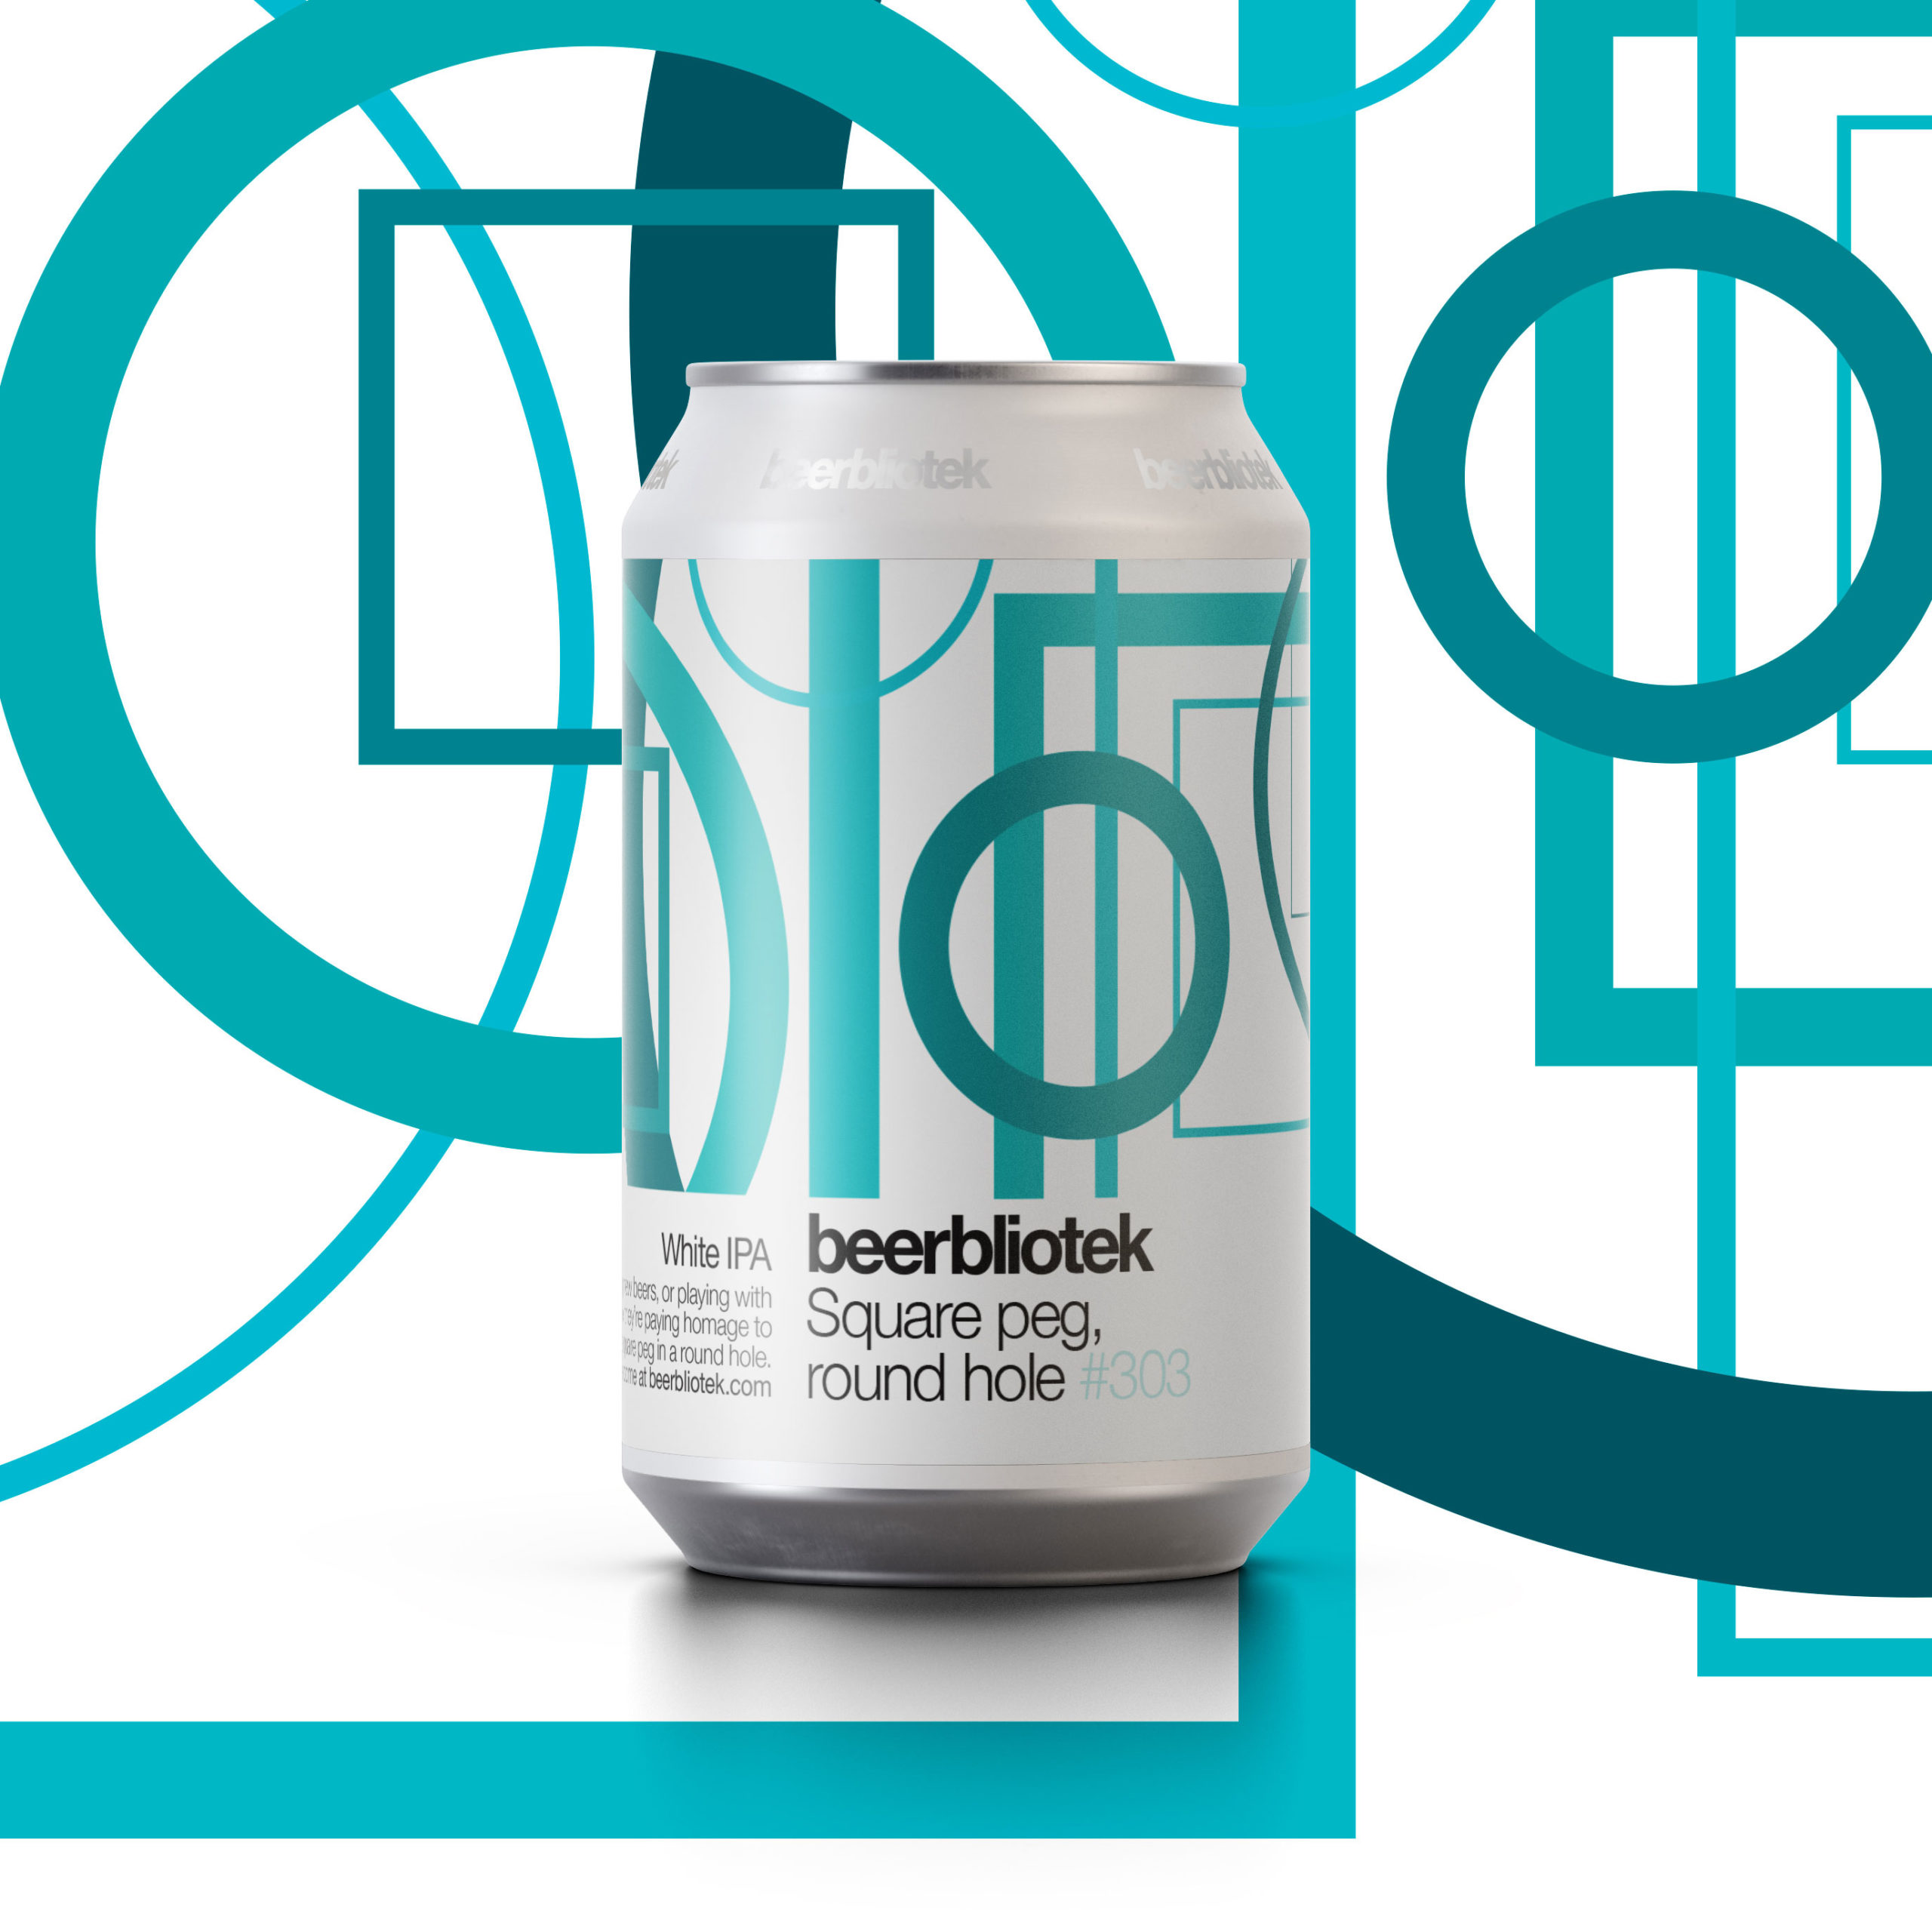 A marketing can packshot of Square peg, round hole, a White IPA, brewed in Gothenburg, by Swedish Craft Brewery Beerbliotek.